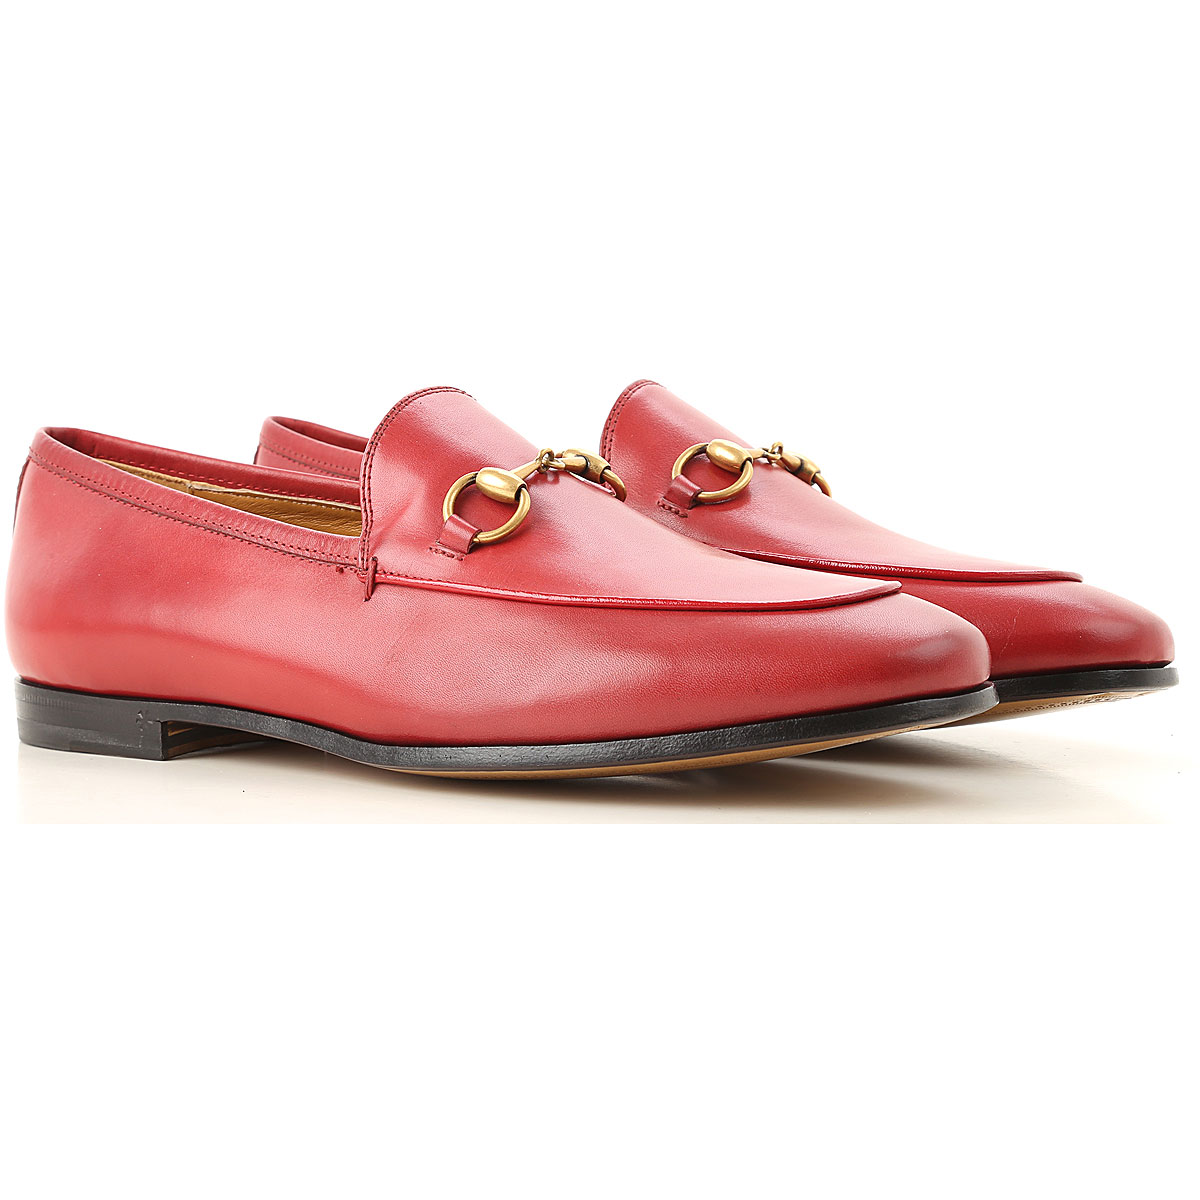 cf095a86d63 Womens Shoes Gucci